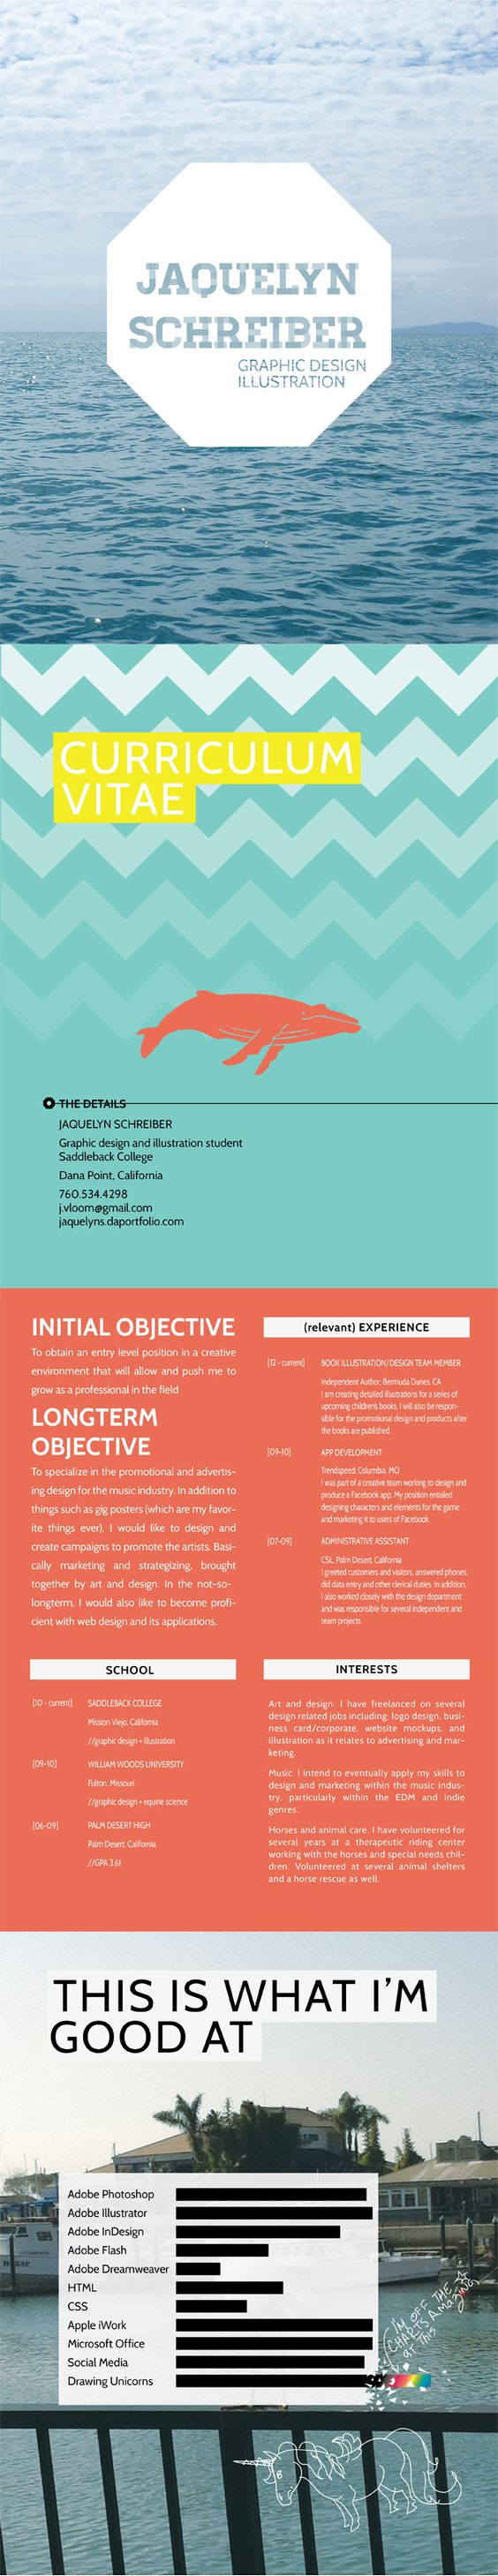 my new resume design featuring whales and unicorns art attack my new resume design featuring whales and unicorns